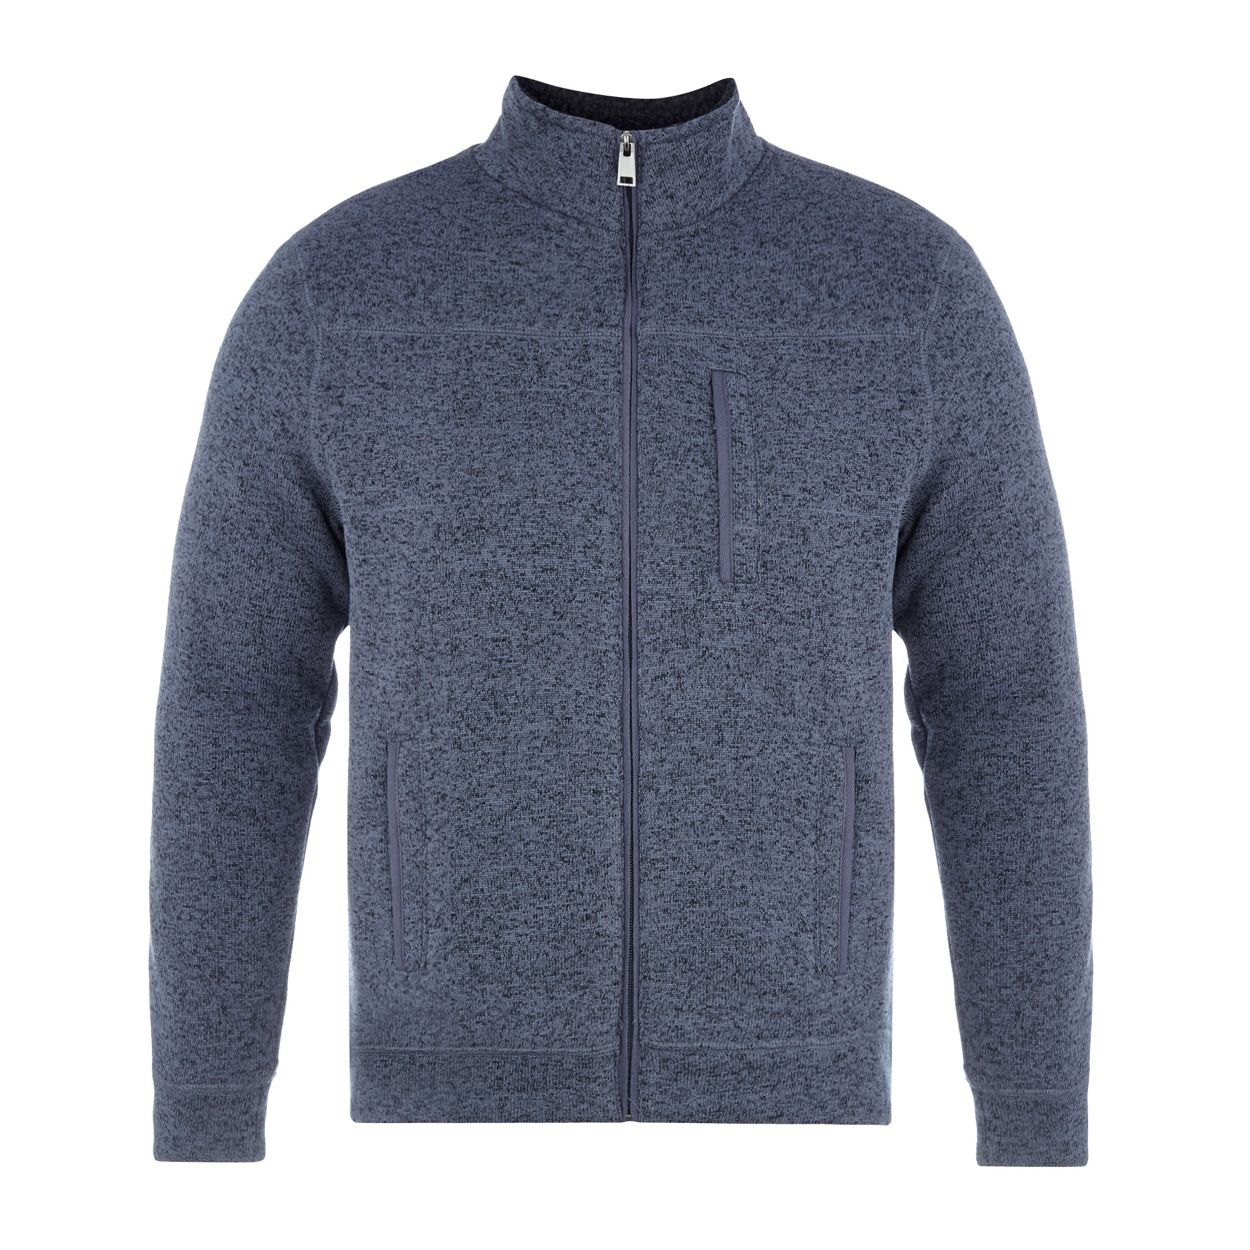 Maine New England Blue knit-look Borg lined zip through jacket